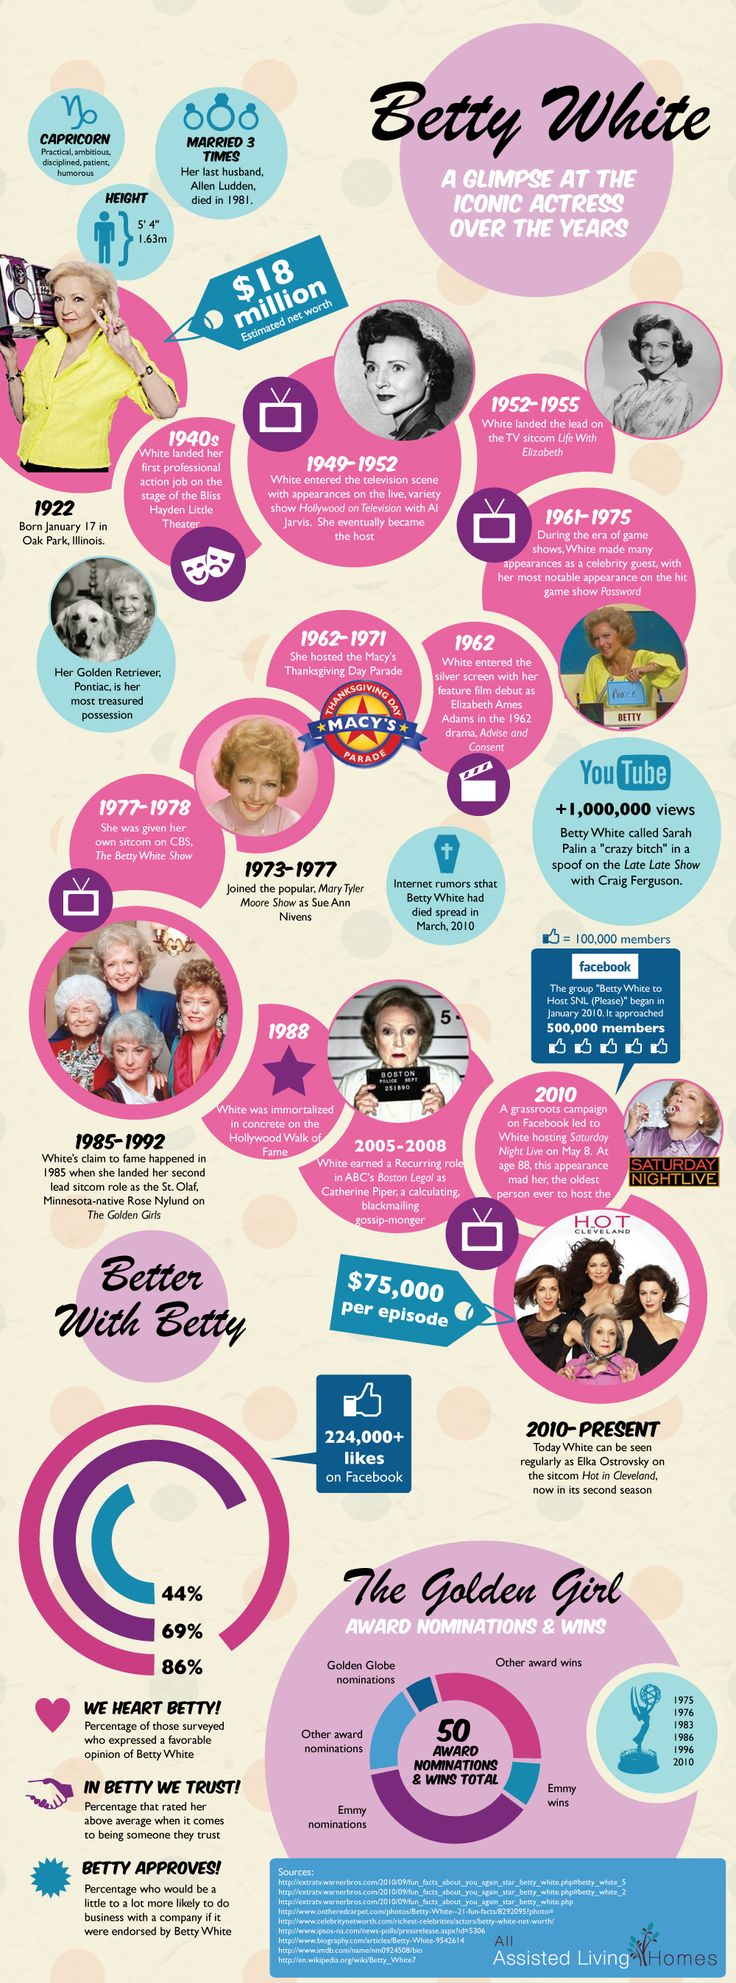 Betty White by the numbers! I'm watching her 90th birthday celebration. This young girl is never going to go away!